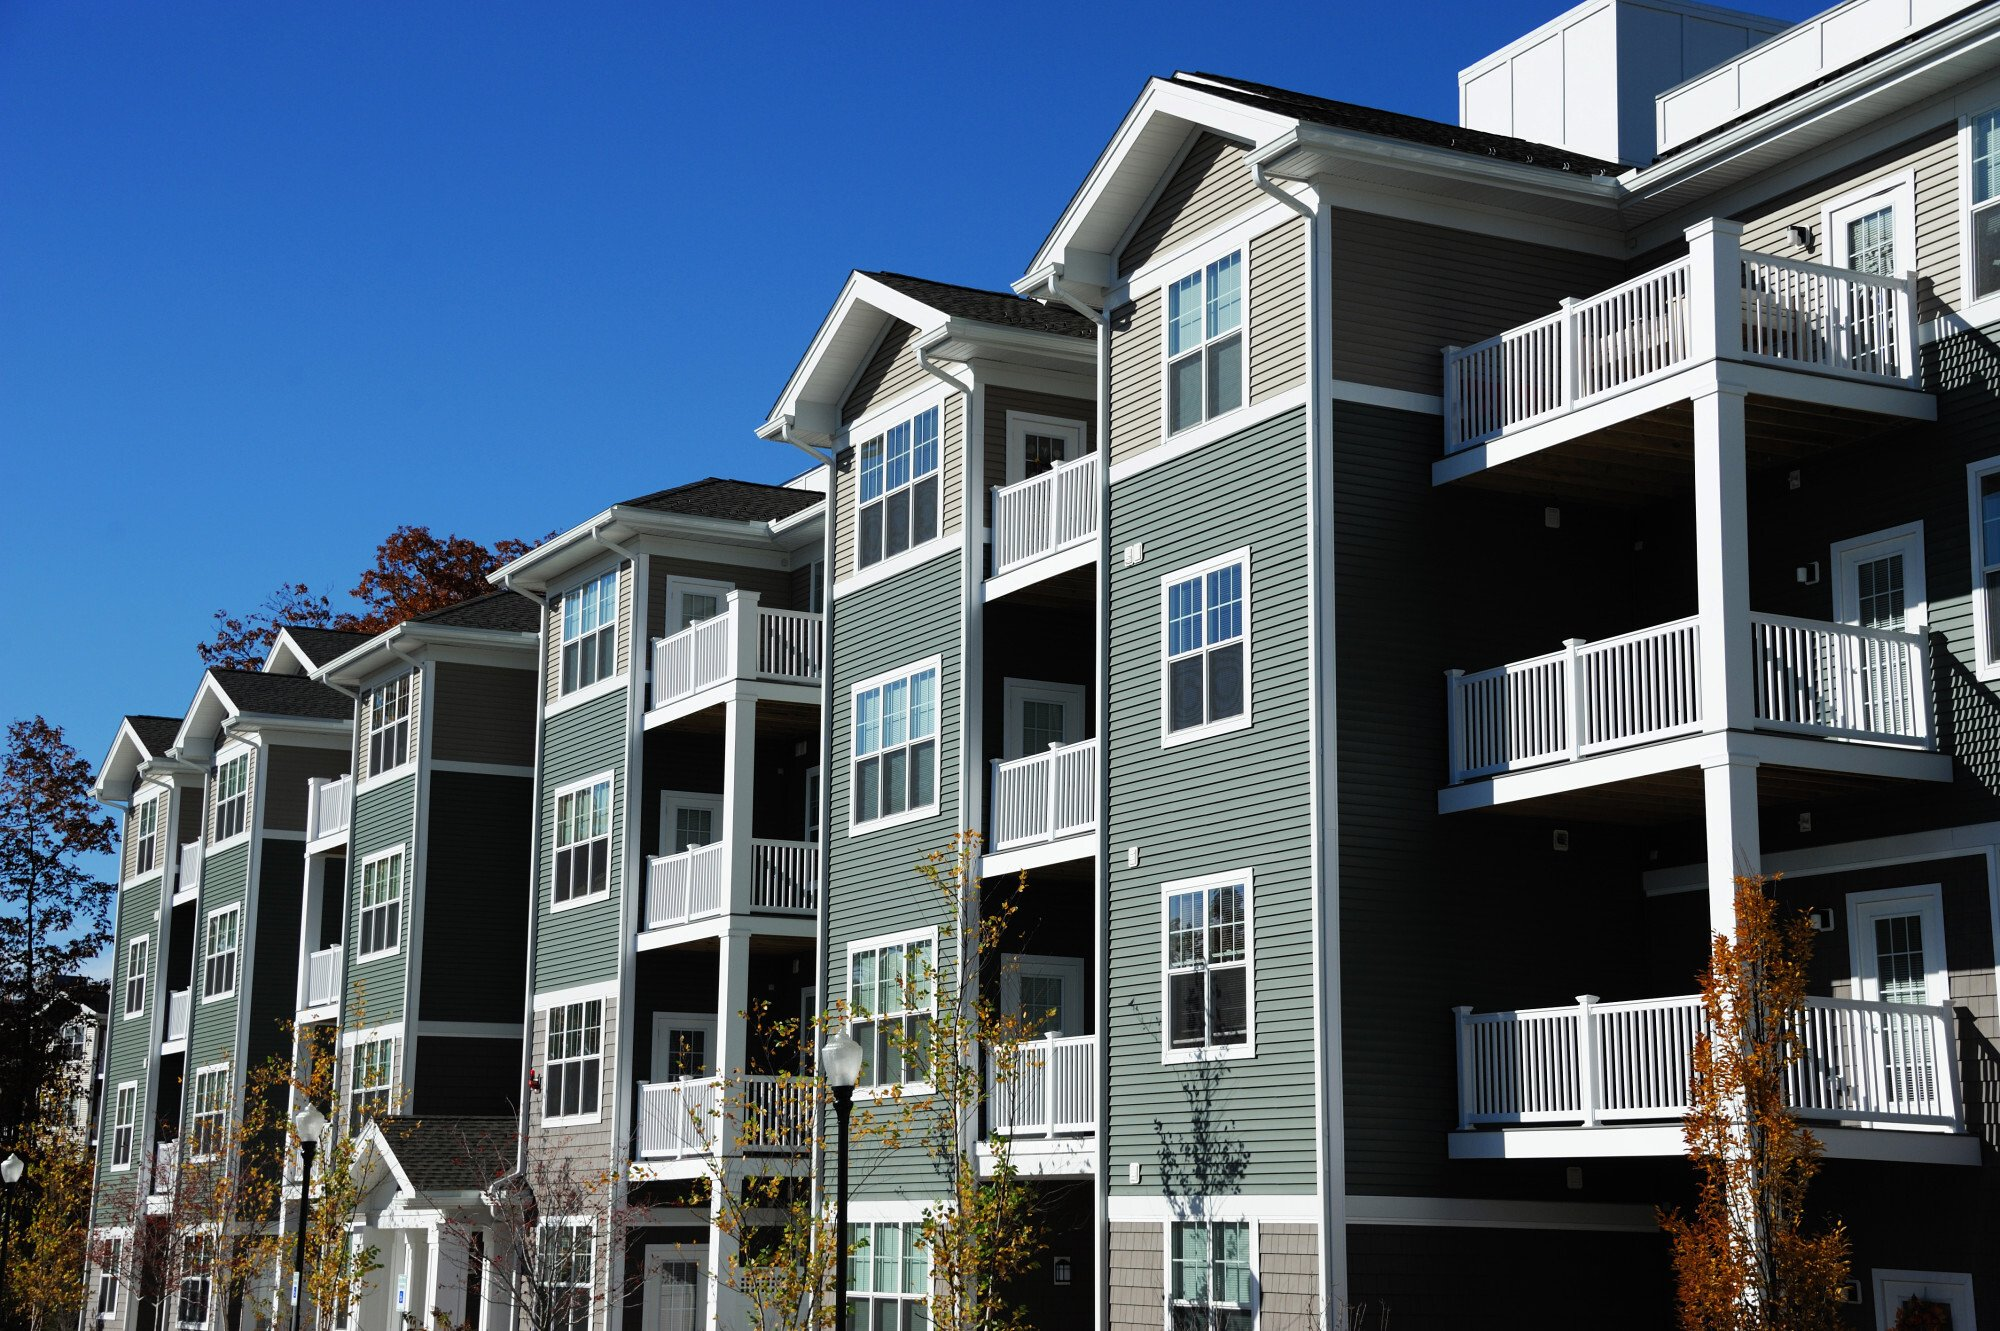 Tips for Choosing an Apartment - Apartment